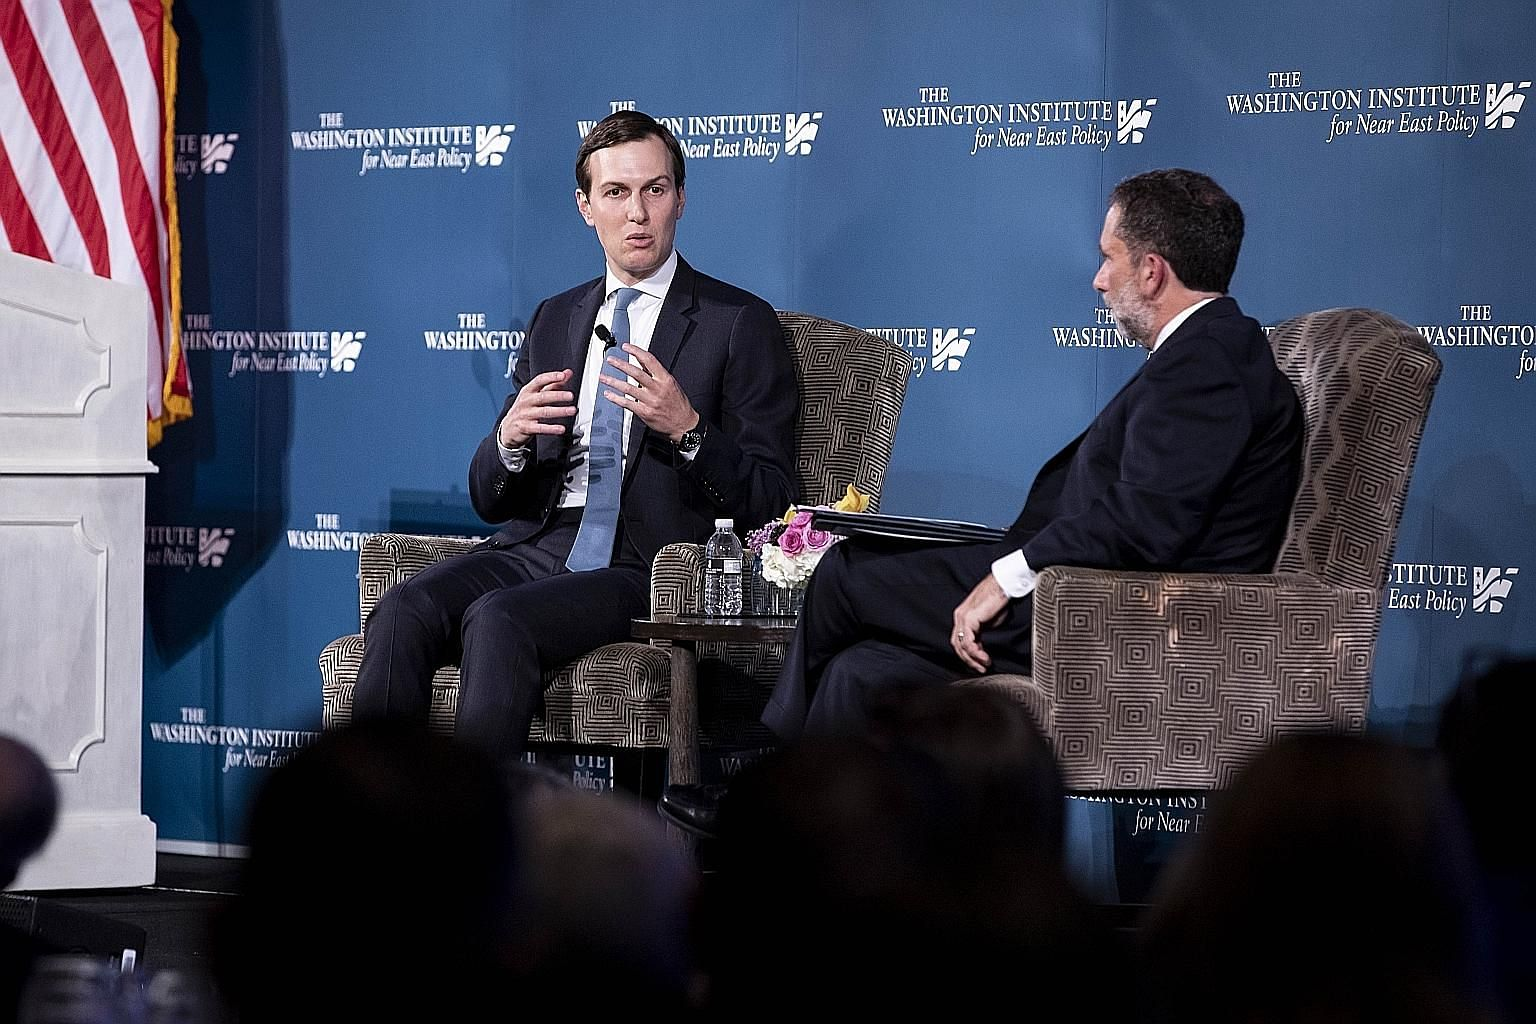 Senior White House adviser Jared Kushner speaking with Washington Institute for Near East Policy executive director Robert Satloff on Thursday. Mr Kushner said his team has spoken to the Palestinian business community and ordinary residents and belie